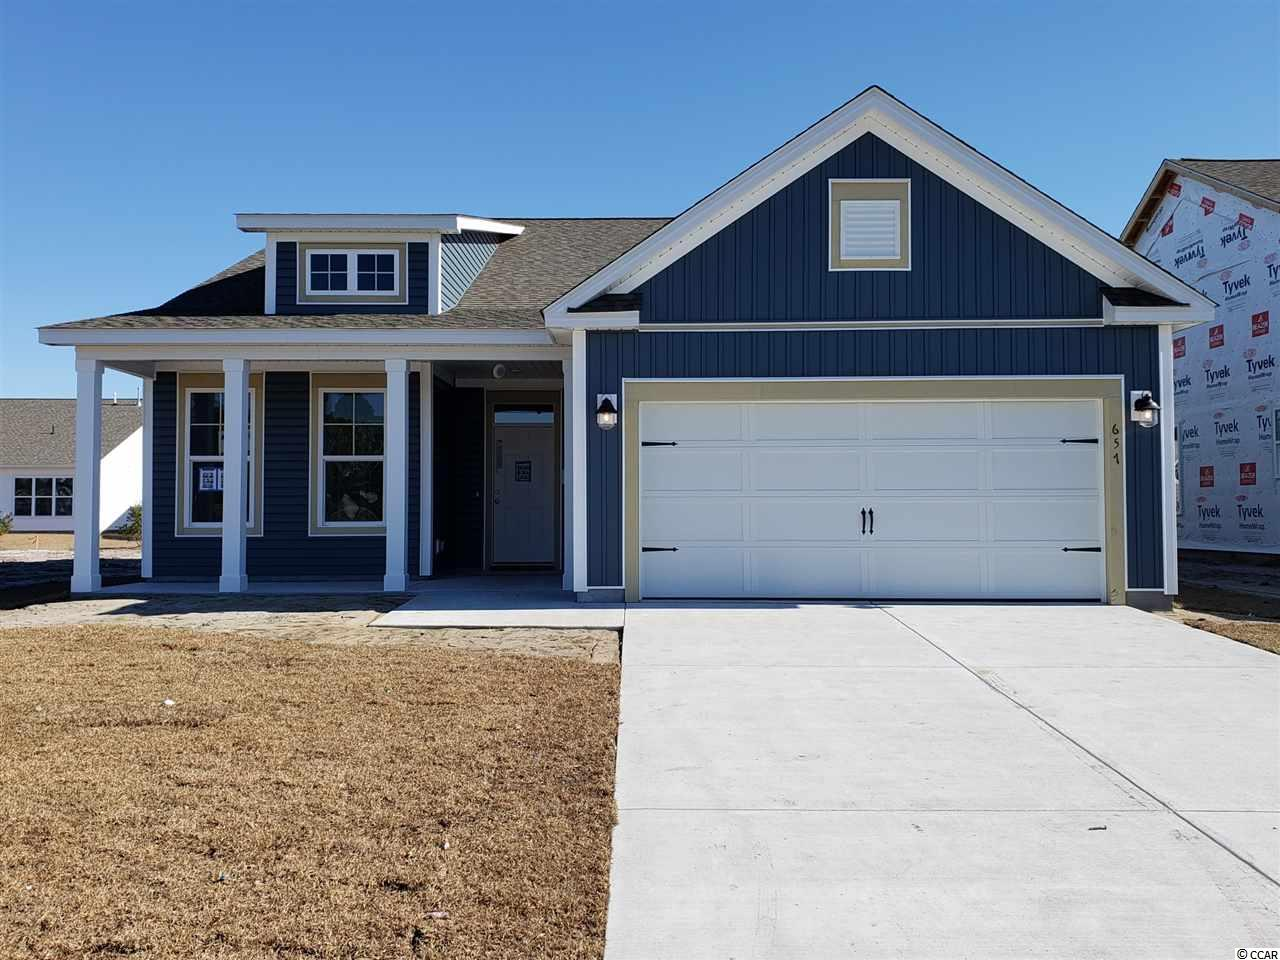 Pictures shown are from a previously built home. Laurel floorplan featuring one-story living with 4 bedrooms, 2.5 bathrooms, and 2-car garage space.  All homes at Sunset Landing are 100% ENERGY STAR certified, which are tested and verified by an independent third-party ensuring we've met or exceeded the strict guidelines outlined by the Environmental Protection Agency (EPA). This vigorous process combined with using superior house wrap and insulation materials will result in a tighter home allowing for more comfort and more savings on your cost of living.  To schedule a showing or for more information, come visit today!